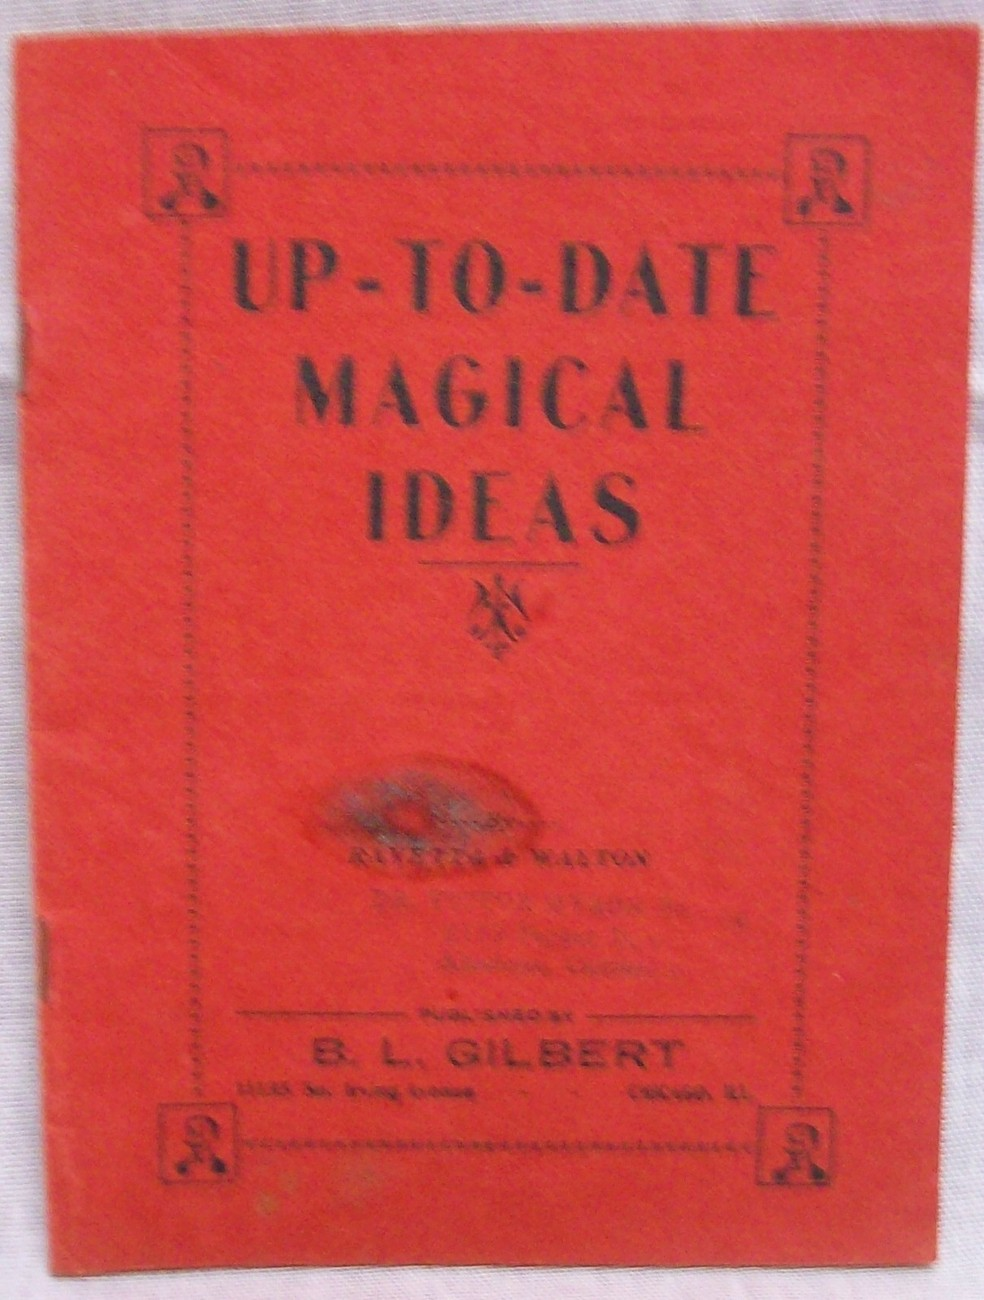 Primary image for Up To Date Magical Idea by Gilbert B.L.